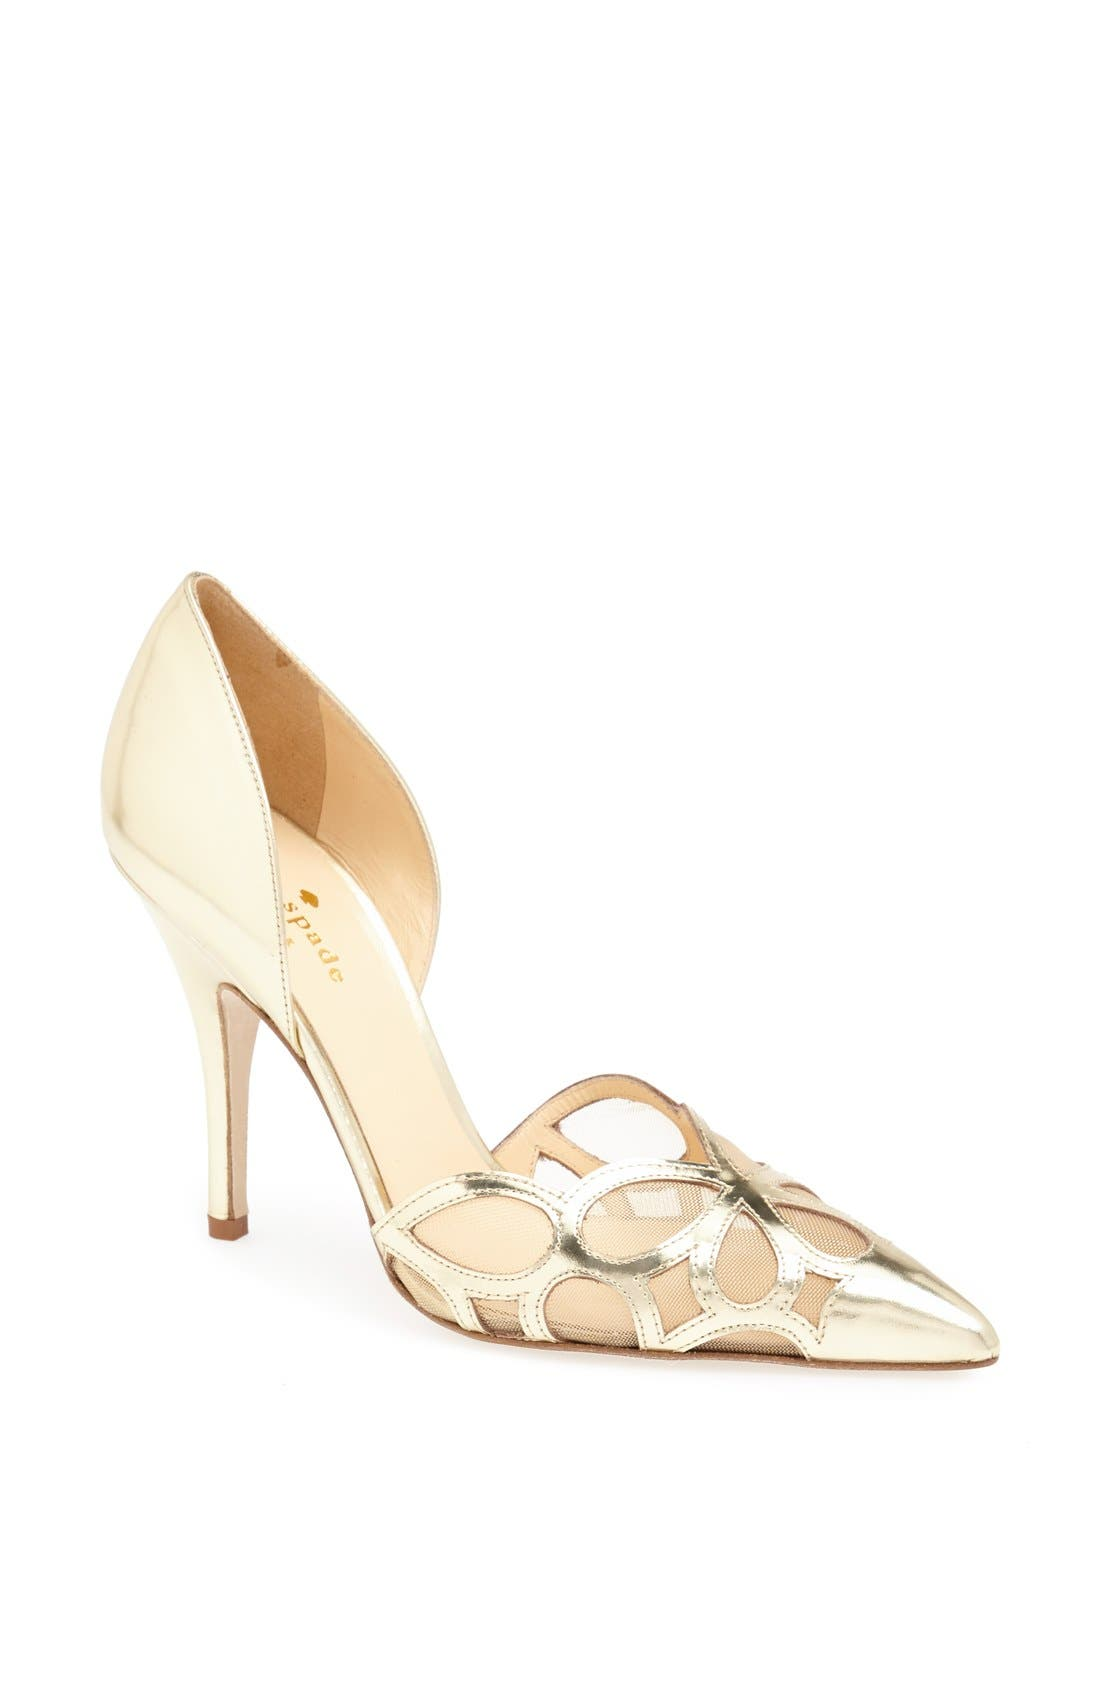 Alternate Image 1 Selected - kate spade new york 'lauretta' pump